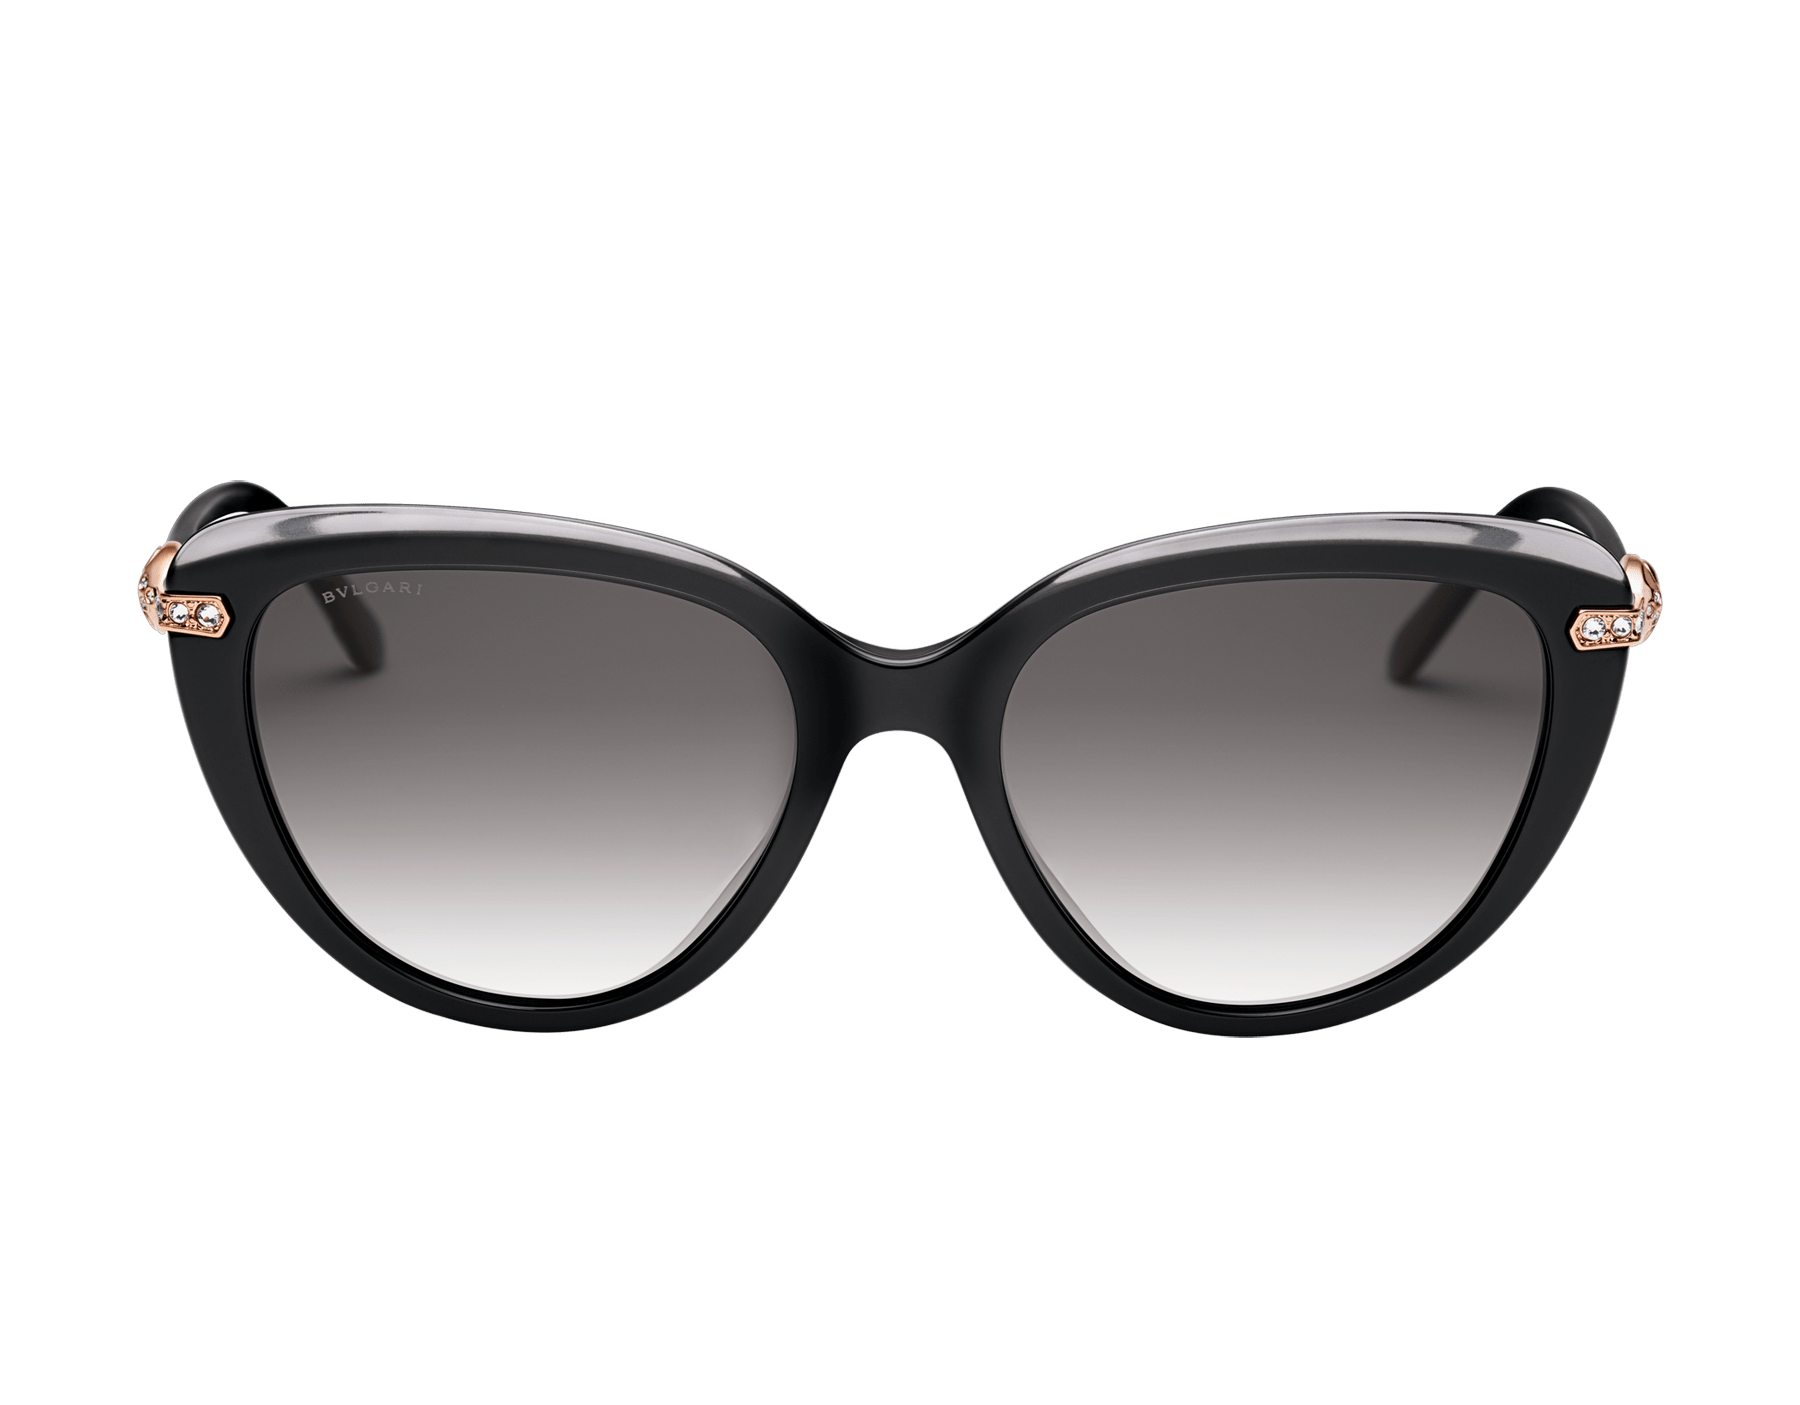 Bulgari Serpenti cat-eye acetate sunglasses. 903656 image 2